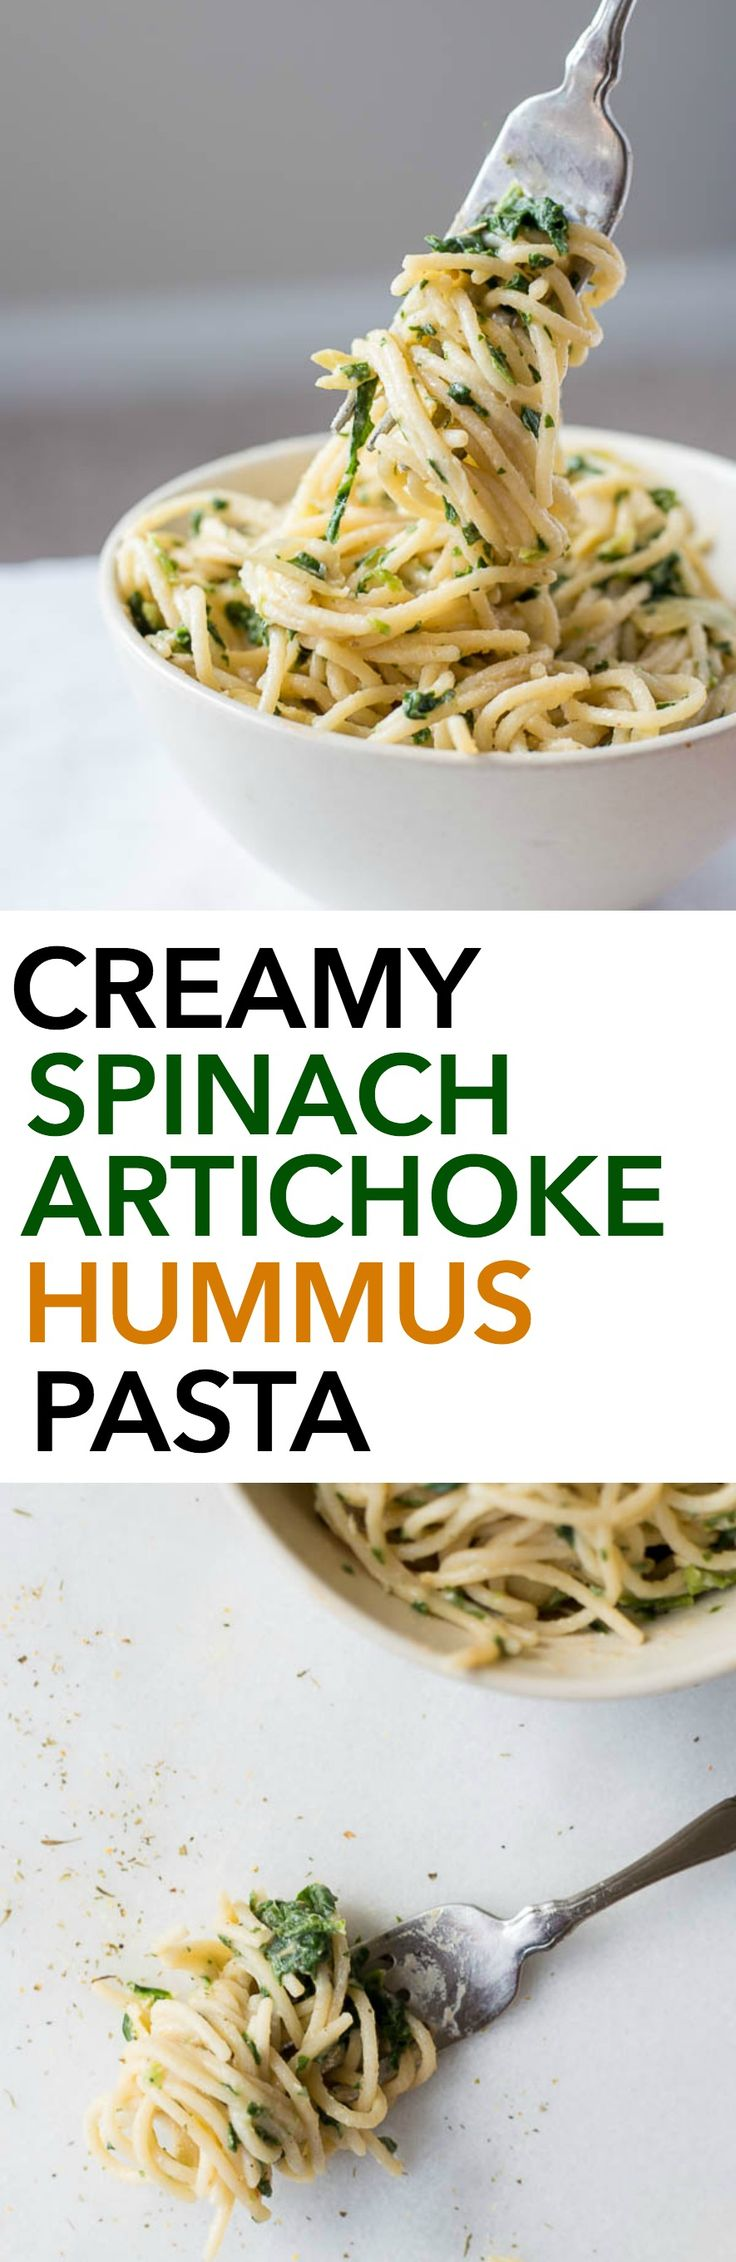 Creamy Spinach Artichoke Hummus Pasta: A healthy, gluten free, and vegan 10 minute meal! You'll love this healthier play on the classic spinach artichoke dip!    fooduzzi.com recipe